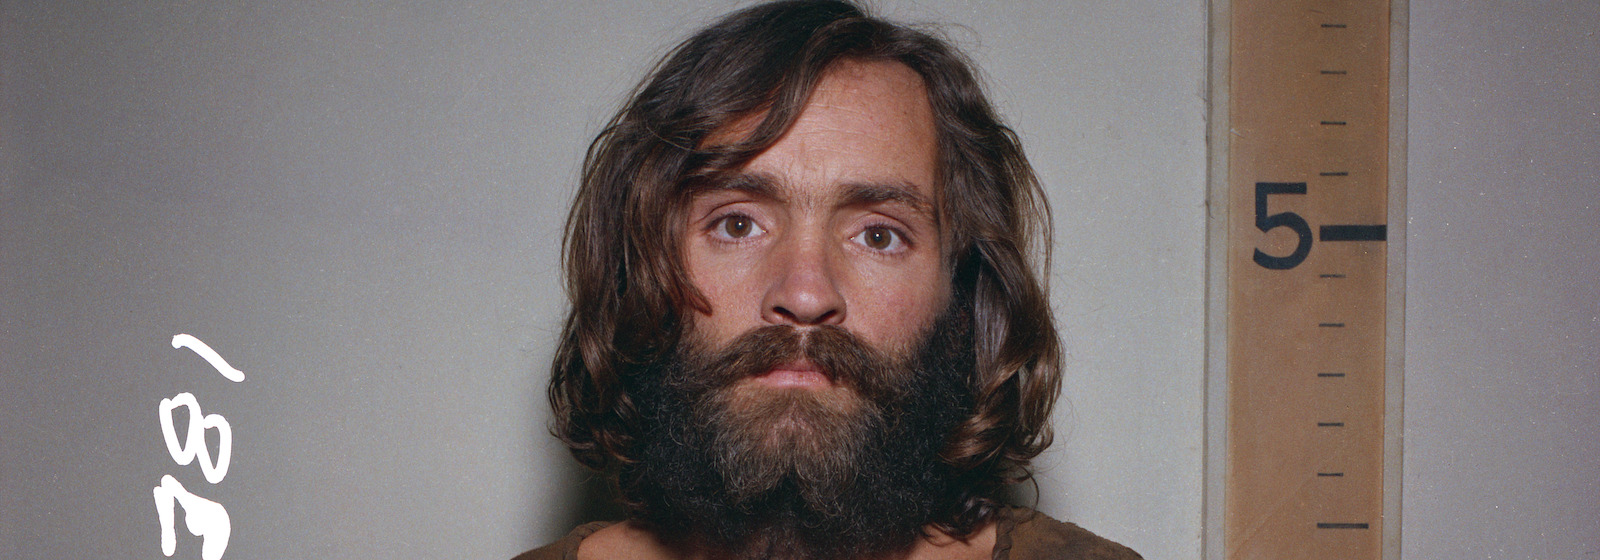 Charles Manson in Helter Skelter: An American Myth